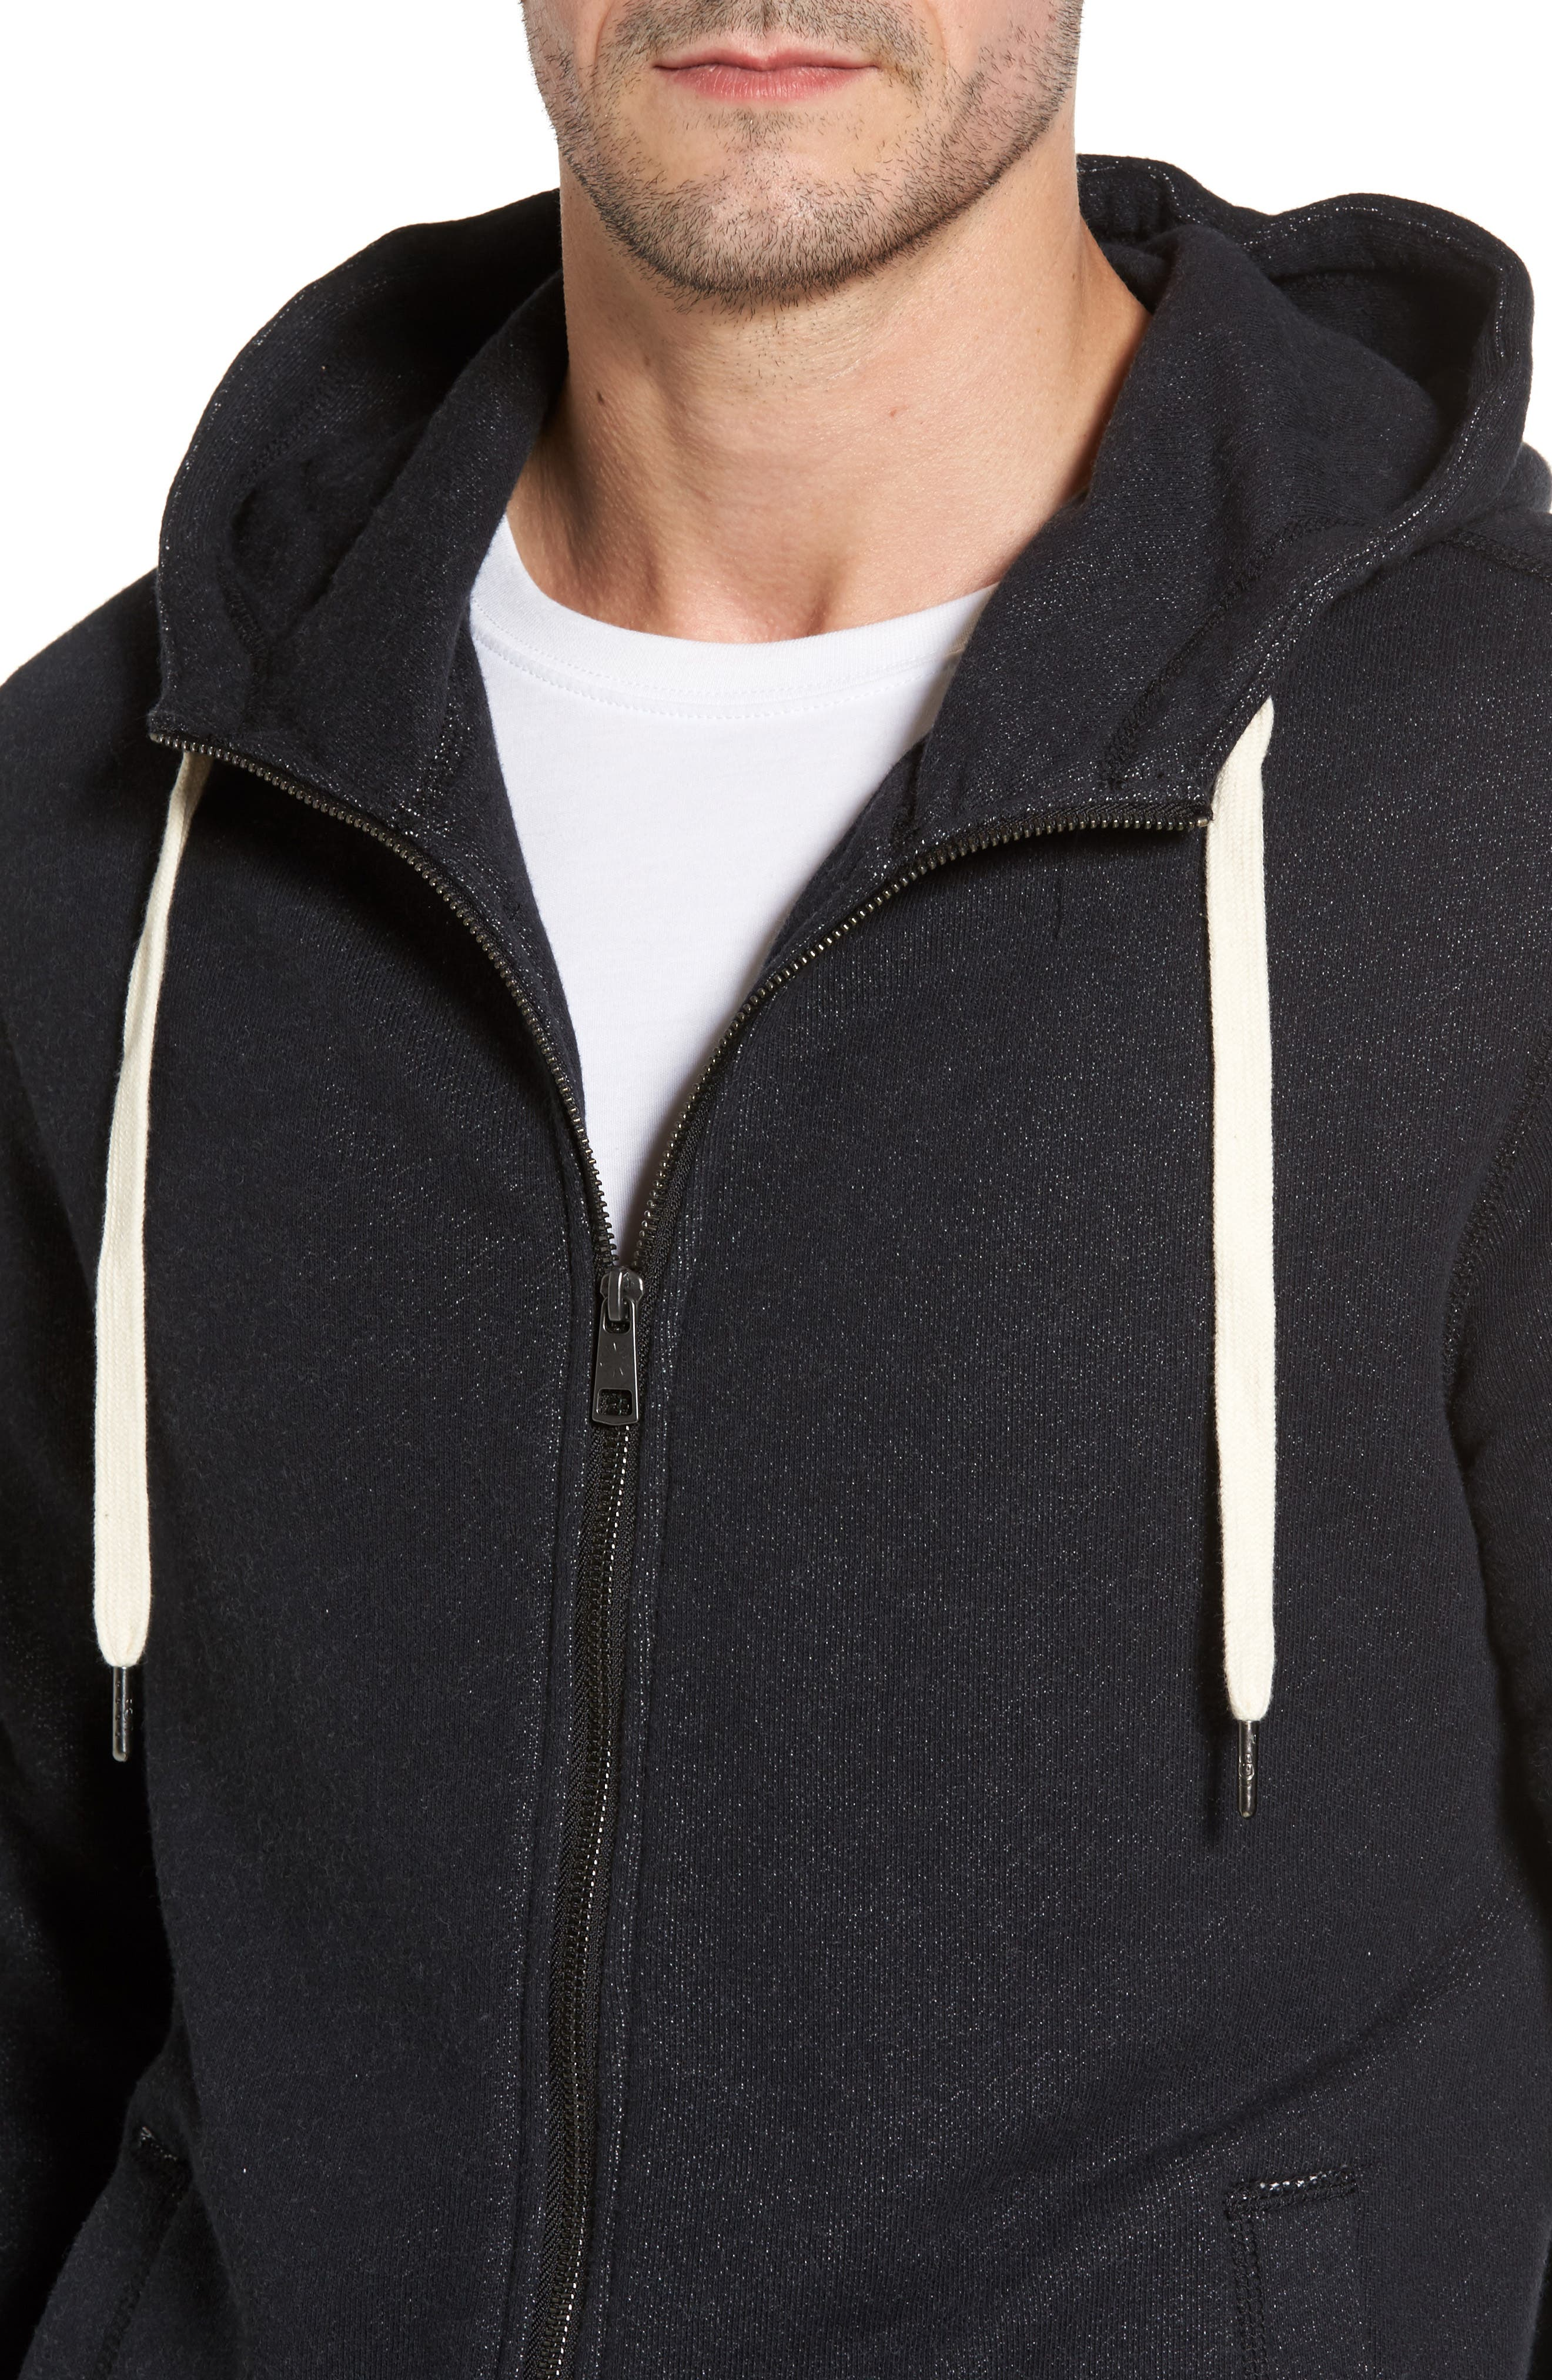 French Terry Full Zip Hoodie,                             Alternate thumbnail 4, color,                             001